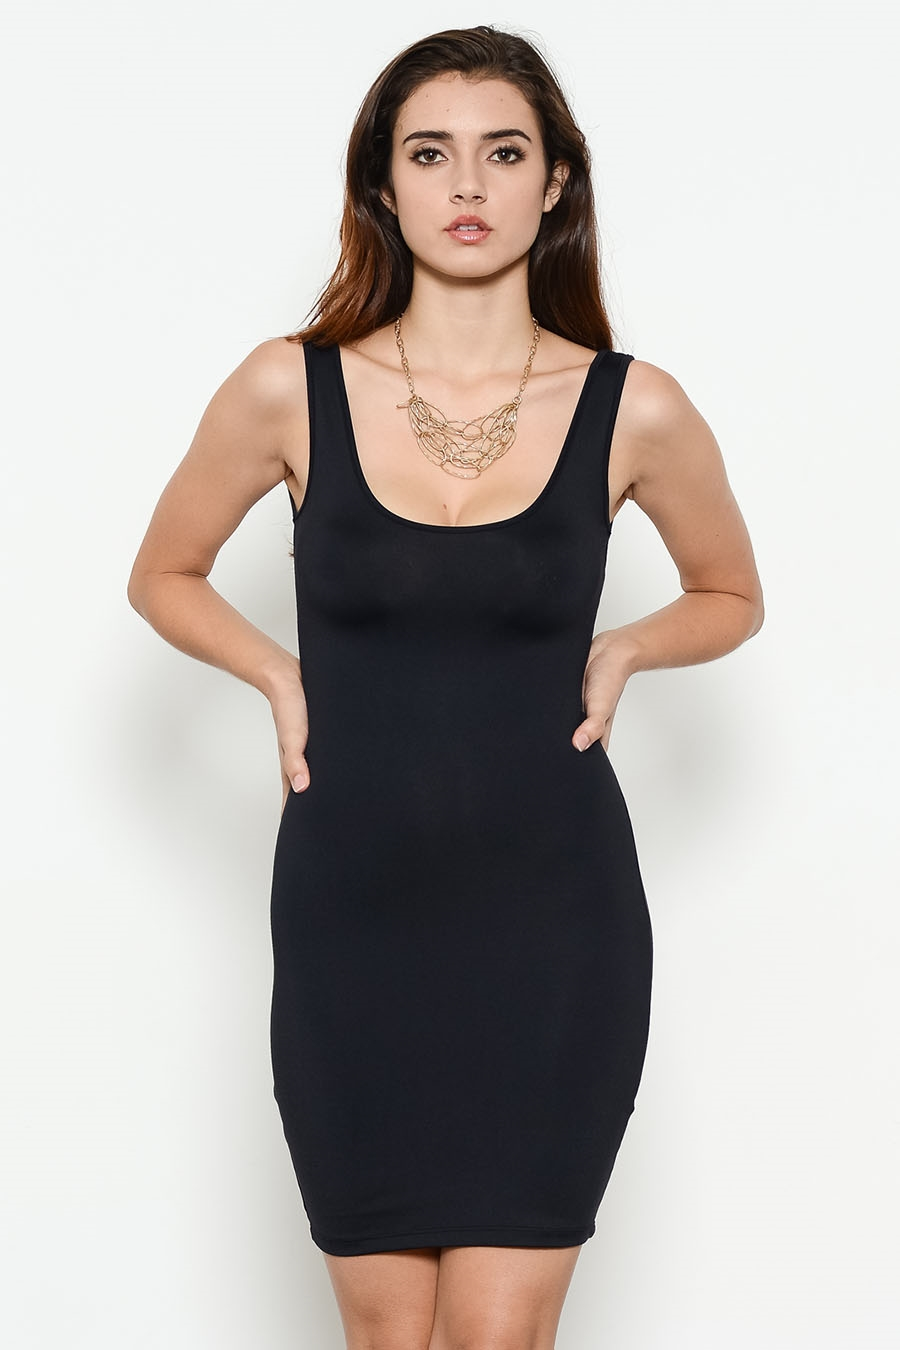 MICRO TANK TOP DRESS - orangeshine.com